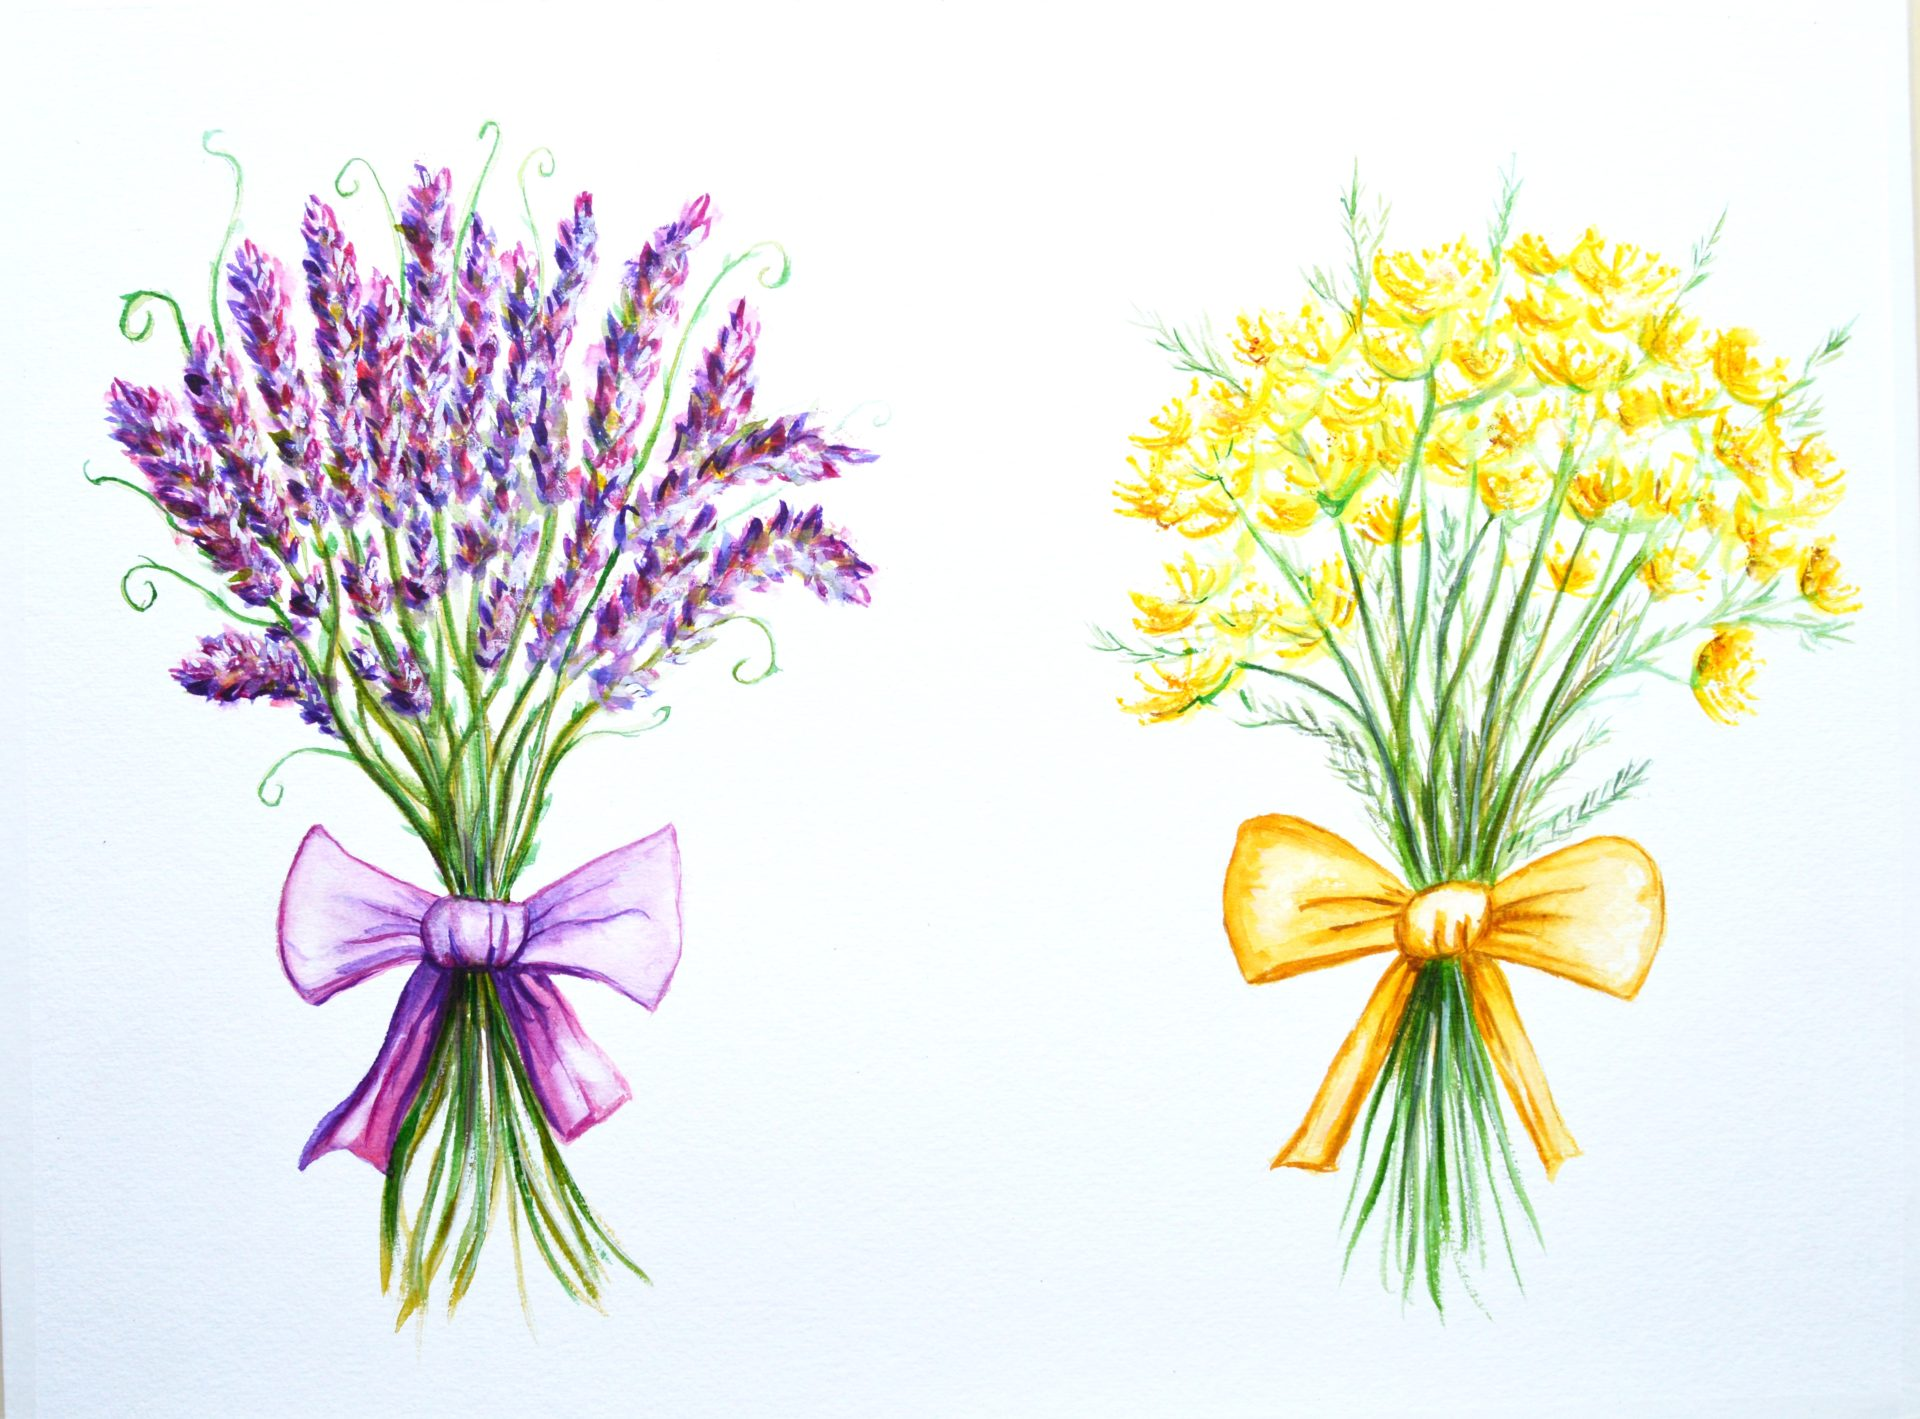 Lavender and Dill